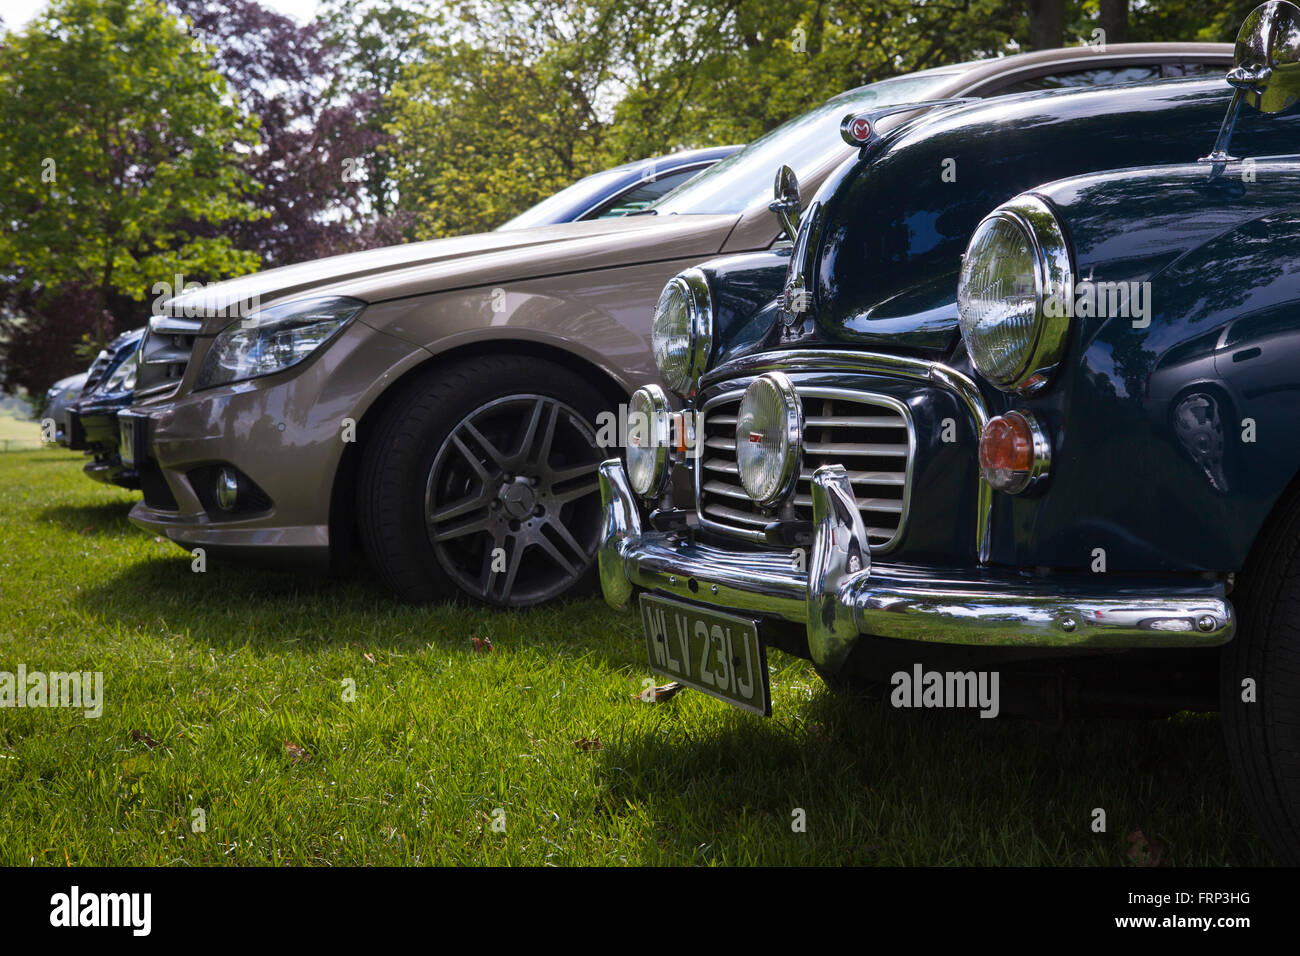 An old morris minor motor car parked amongst new cars ina grass car ...